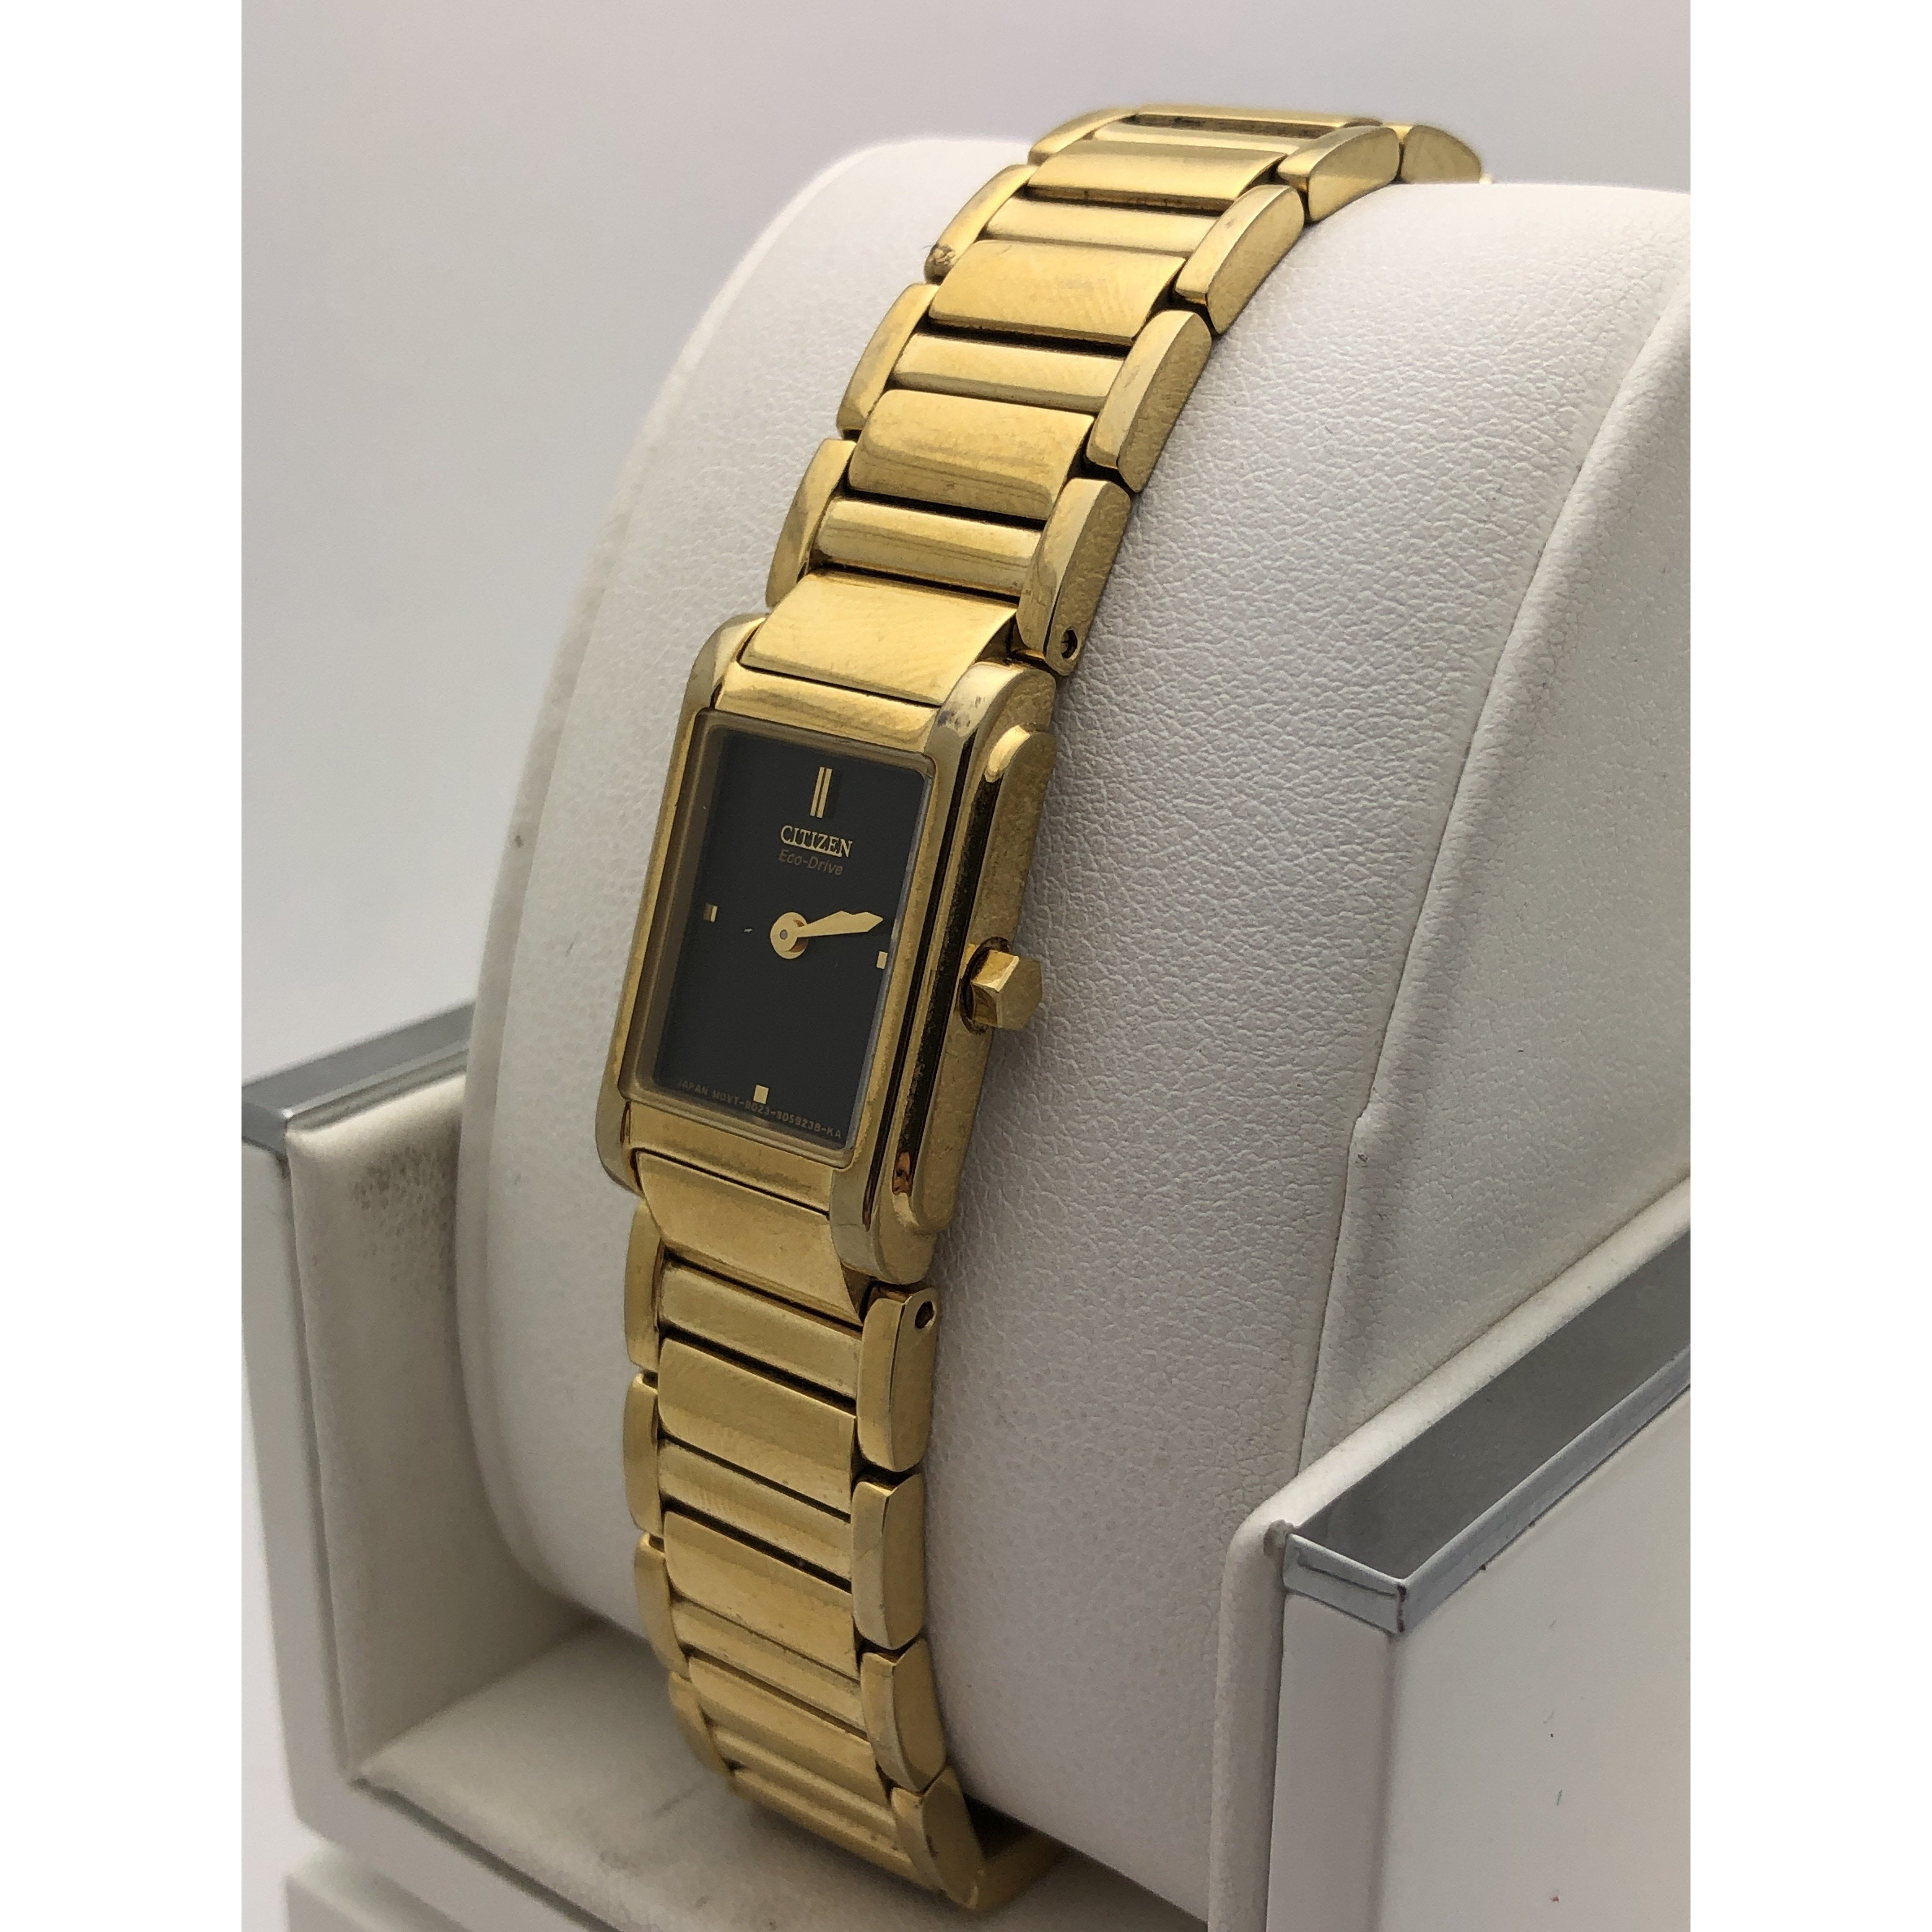 Citizen Ladies Black Dial Gold Stainless Steel Bracelet Watch 650127